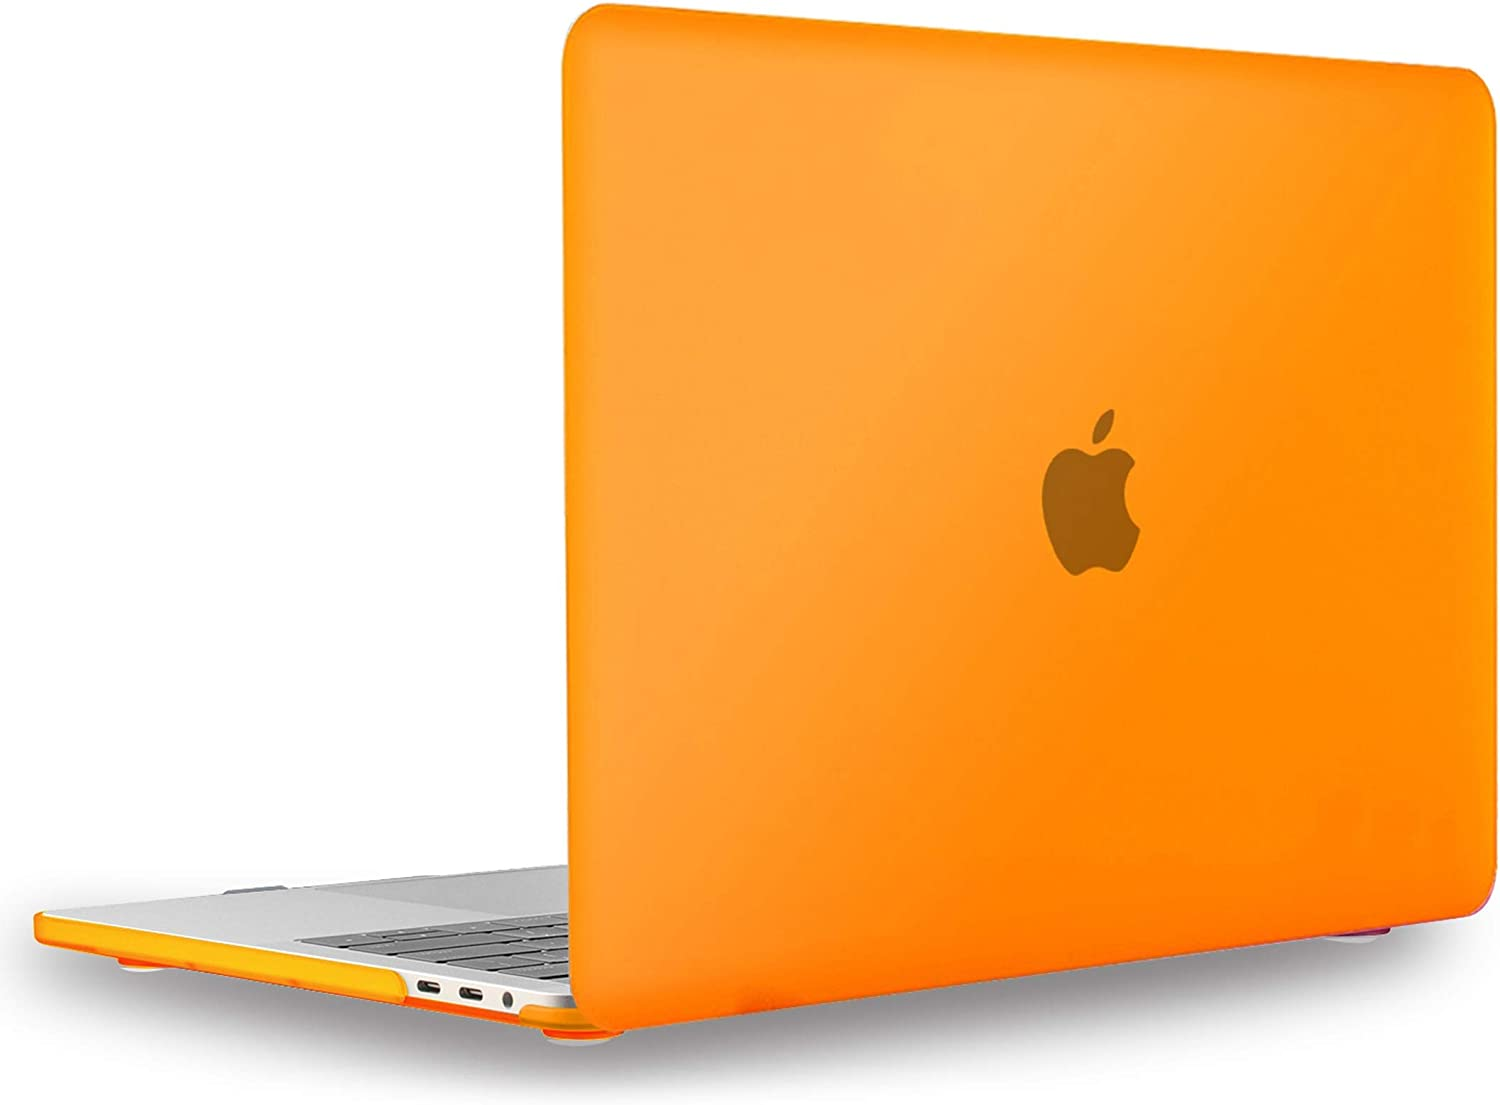 UESWILL MacBook Pro 13 inch Case 2019 2018 2017 2016, Smooth Matte Hard Case for MacBook Pro 13 inch, 2/4 Thunderbolt 3 Ports (USB-C), with/Without Touch Bar, Model A2159/A1989/A1706/A1708, Orange